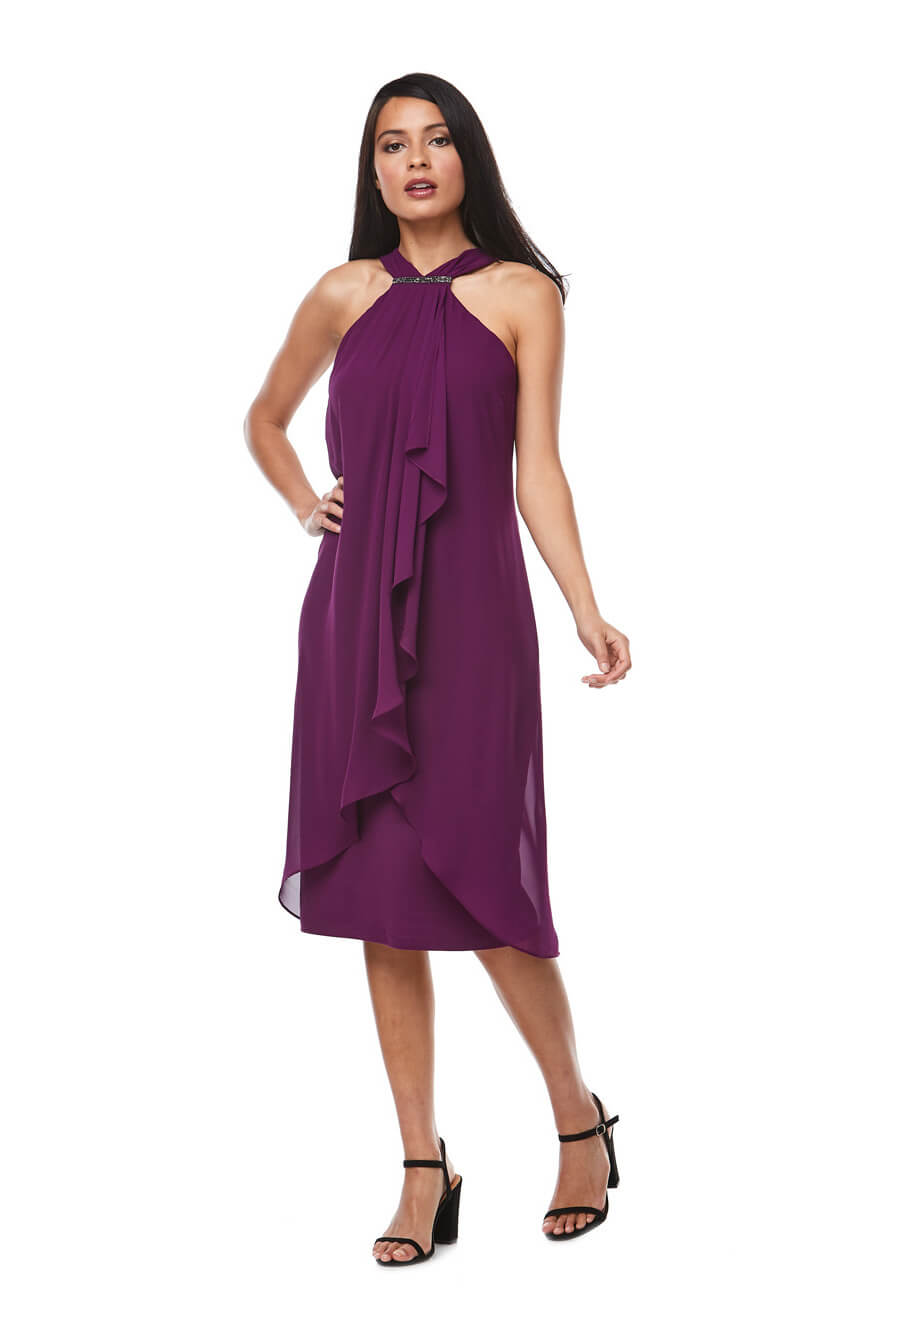 Chiffon Halter dress with waterfall front and beaded trim